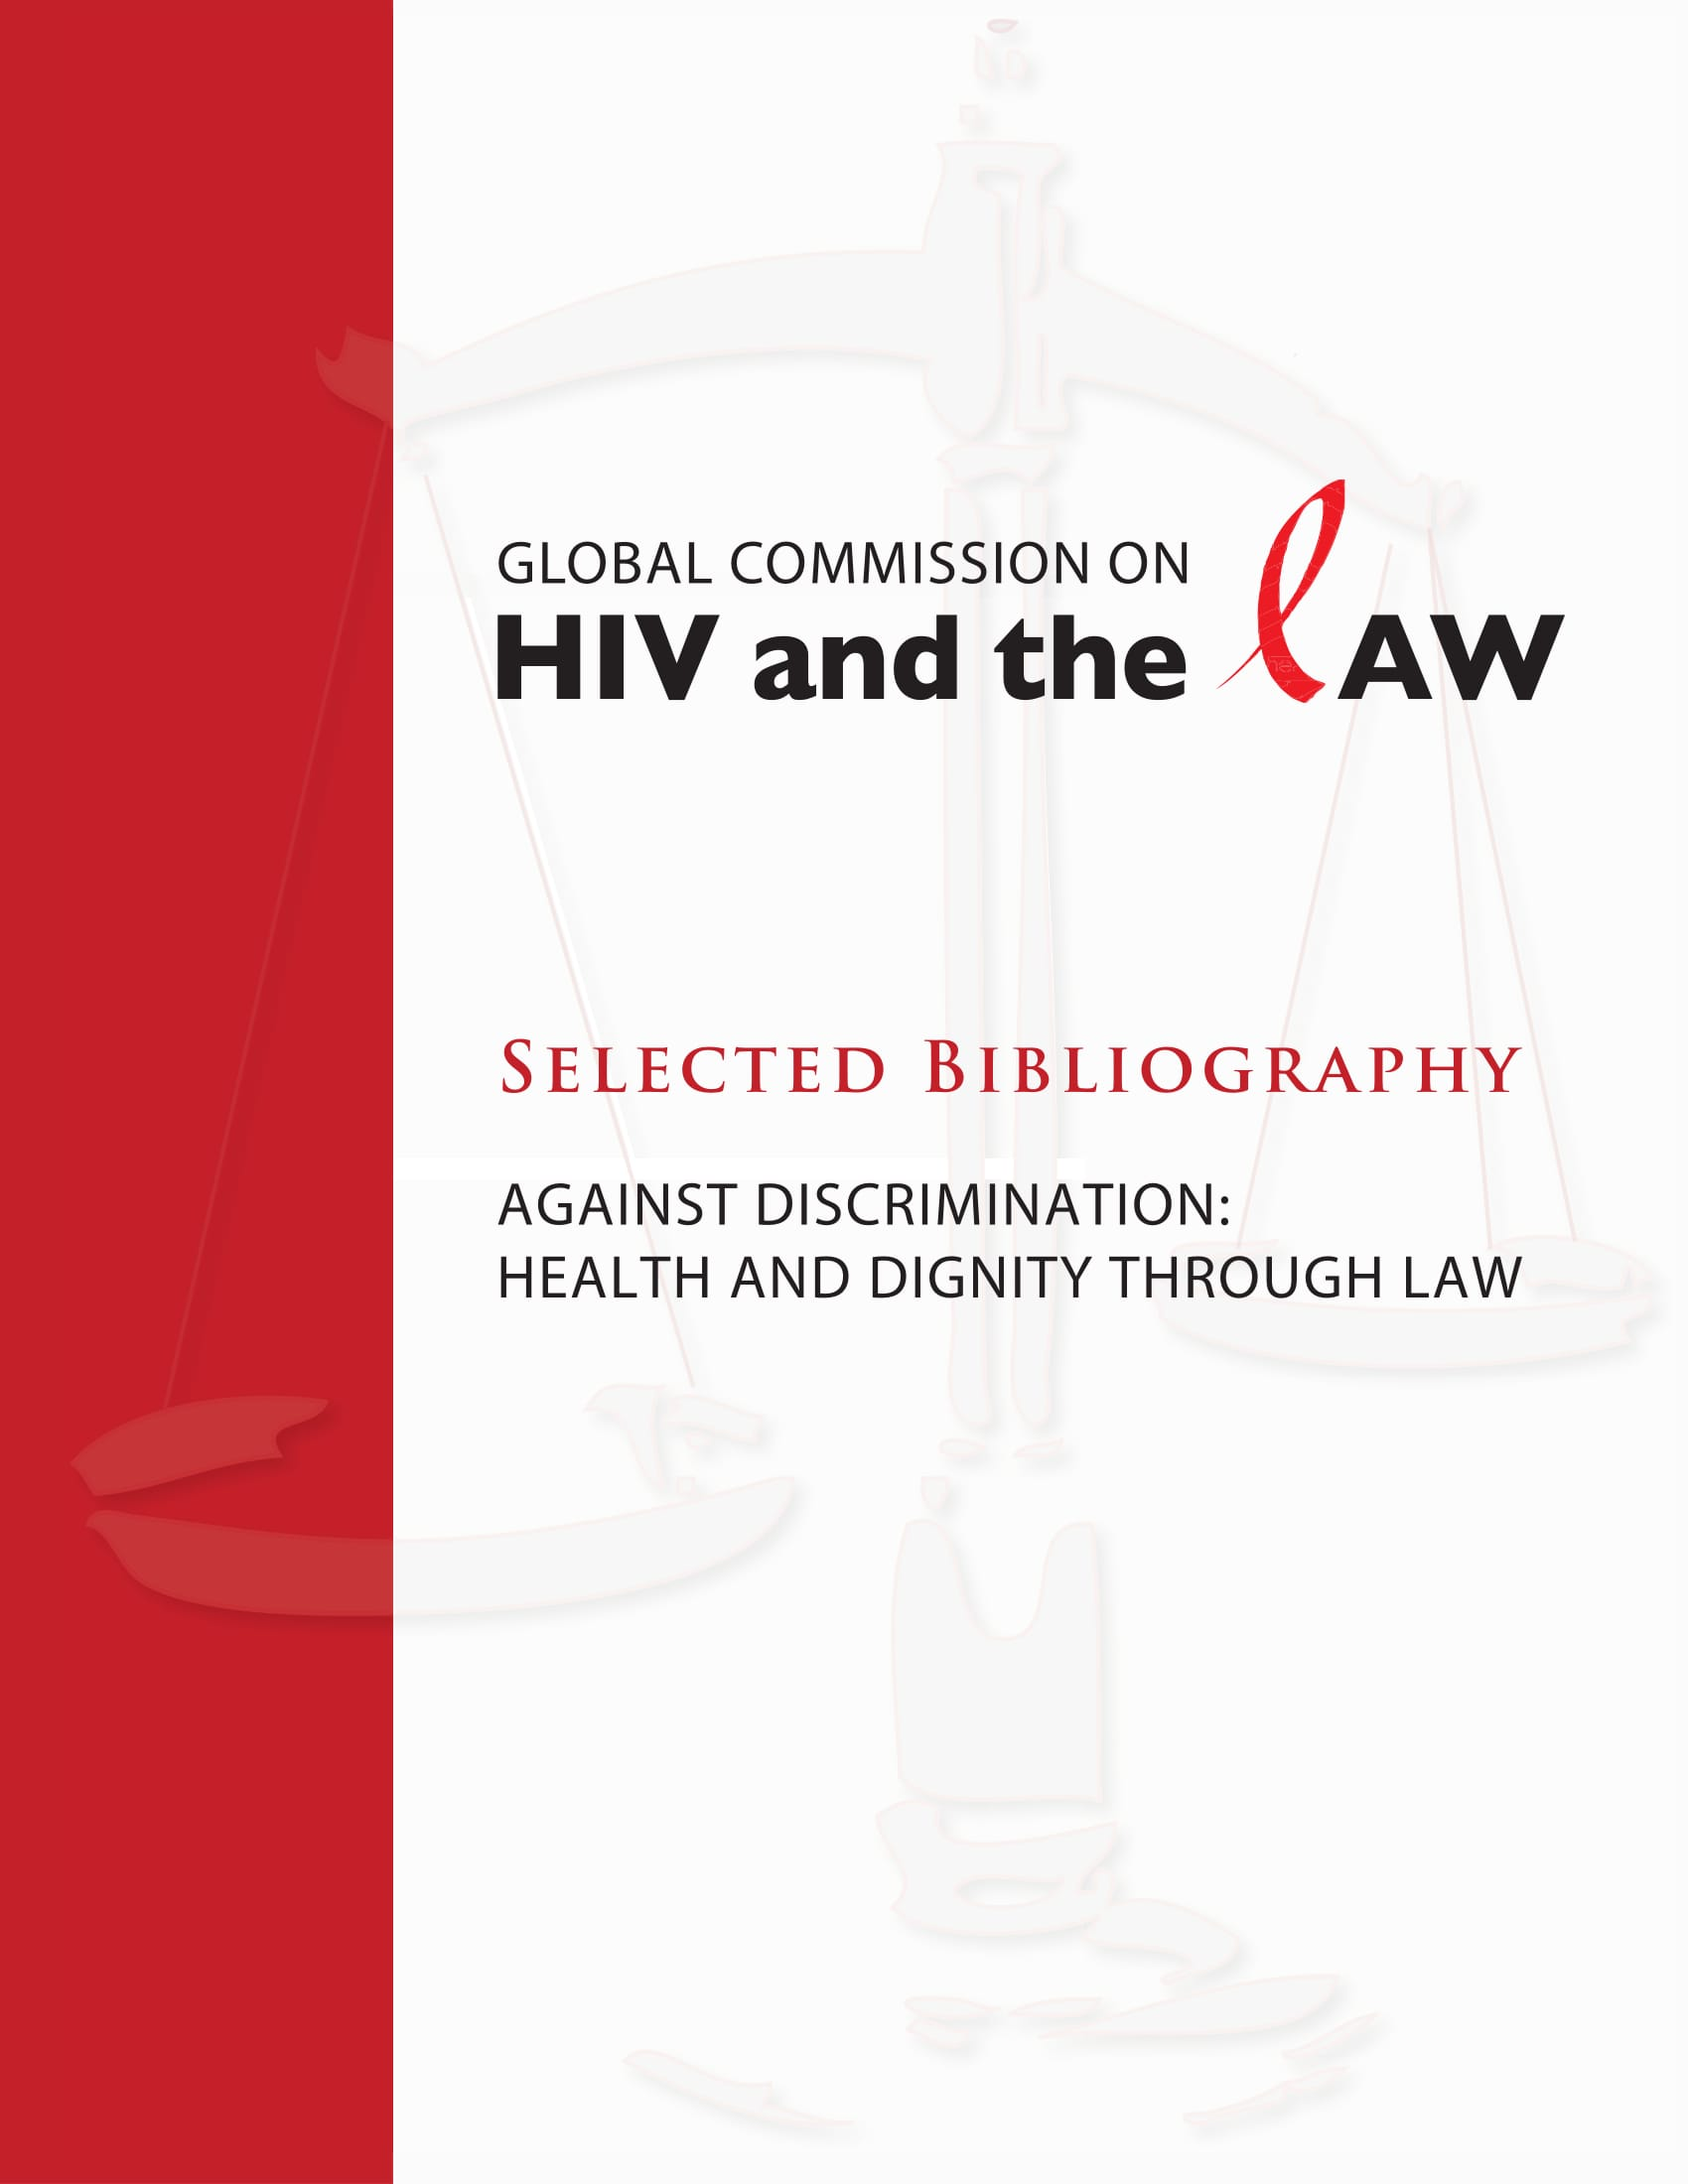 Against Discrimination: Health and Dignity through Law